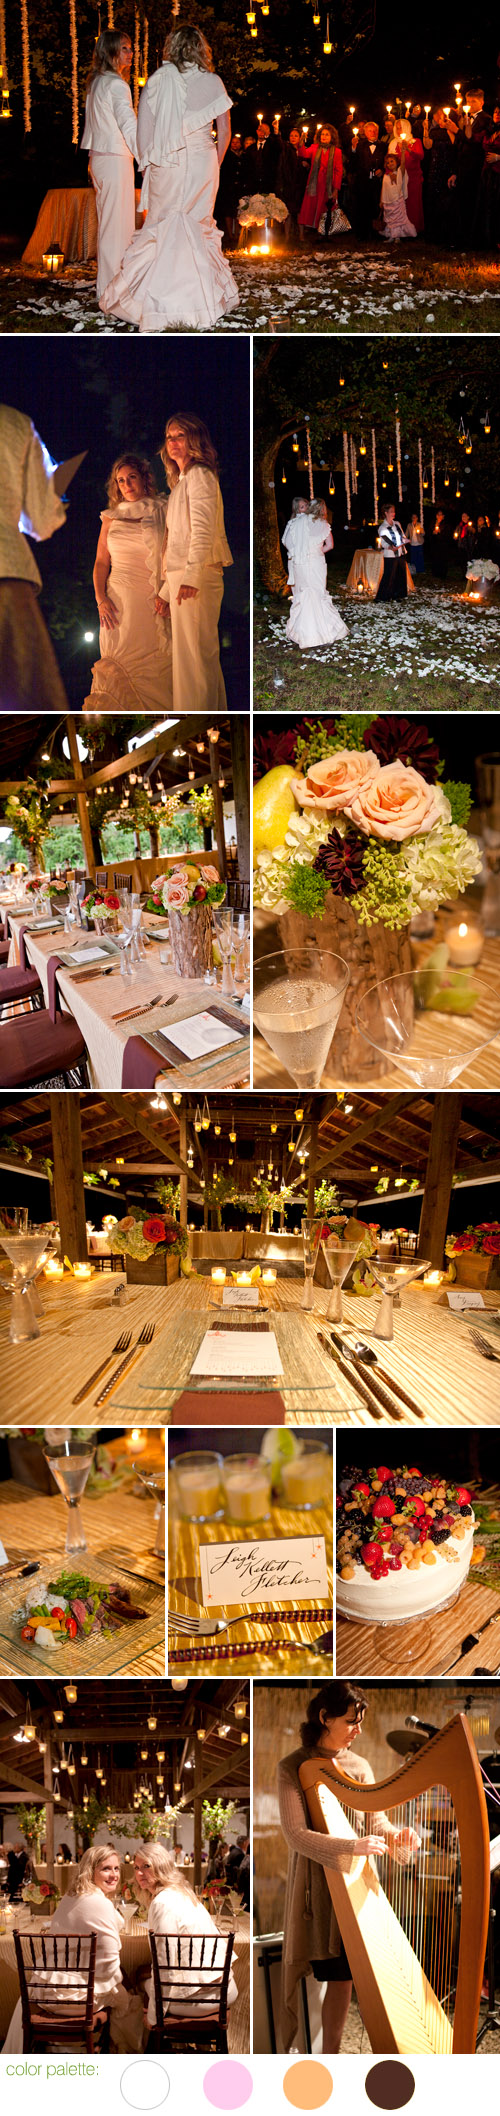 romantic rustic decor wedding on Thompson Island, Boston, MA, Bernadette Coveney Smith - 14 Stories, photos by Kathempel Photography